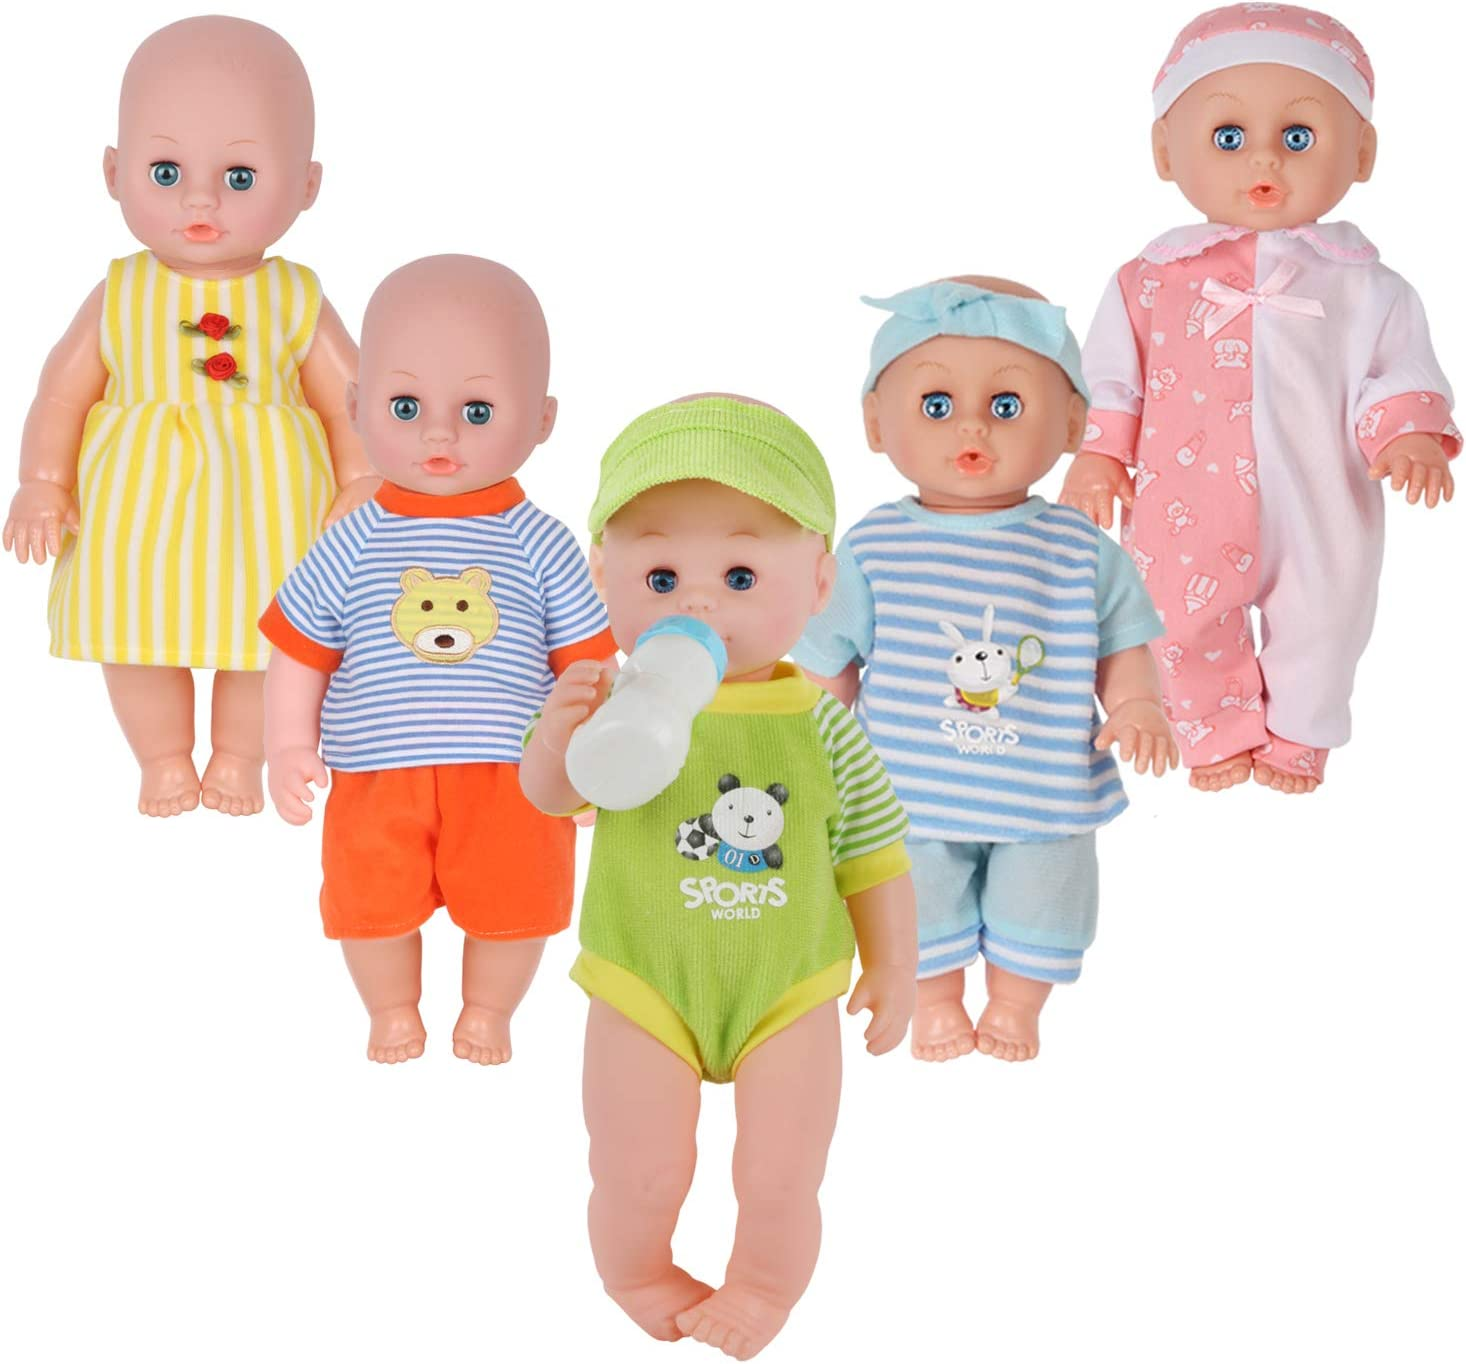 Amazon.com: Set of 5 for 11-12-13-14 Inch Newborn Reborn Alive Doll Baby  Doll Clothes Dress Costumes Gown Outfits with Feeding Bottle Birthday Xmas  Present Wrap: Toys & Games